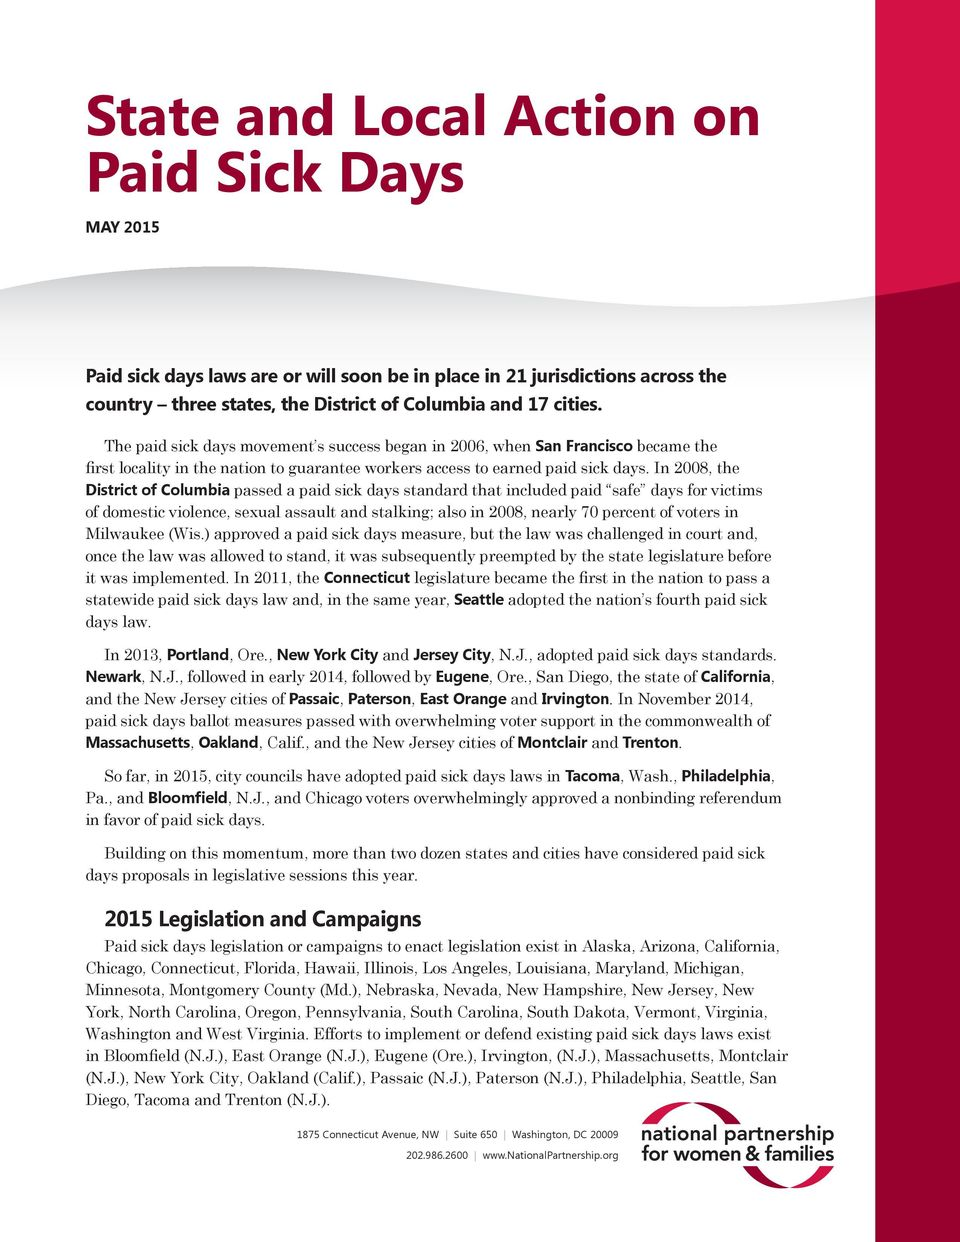 In 2008, the District of Columbia passed a paid sick days standard that included paid safe days for victims of domestic violence, sexual assault and stalking; also in 2008, nearly 70 percent of